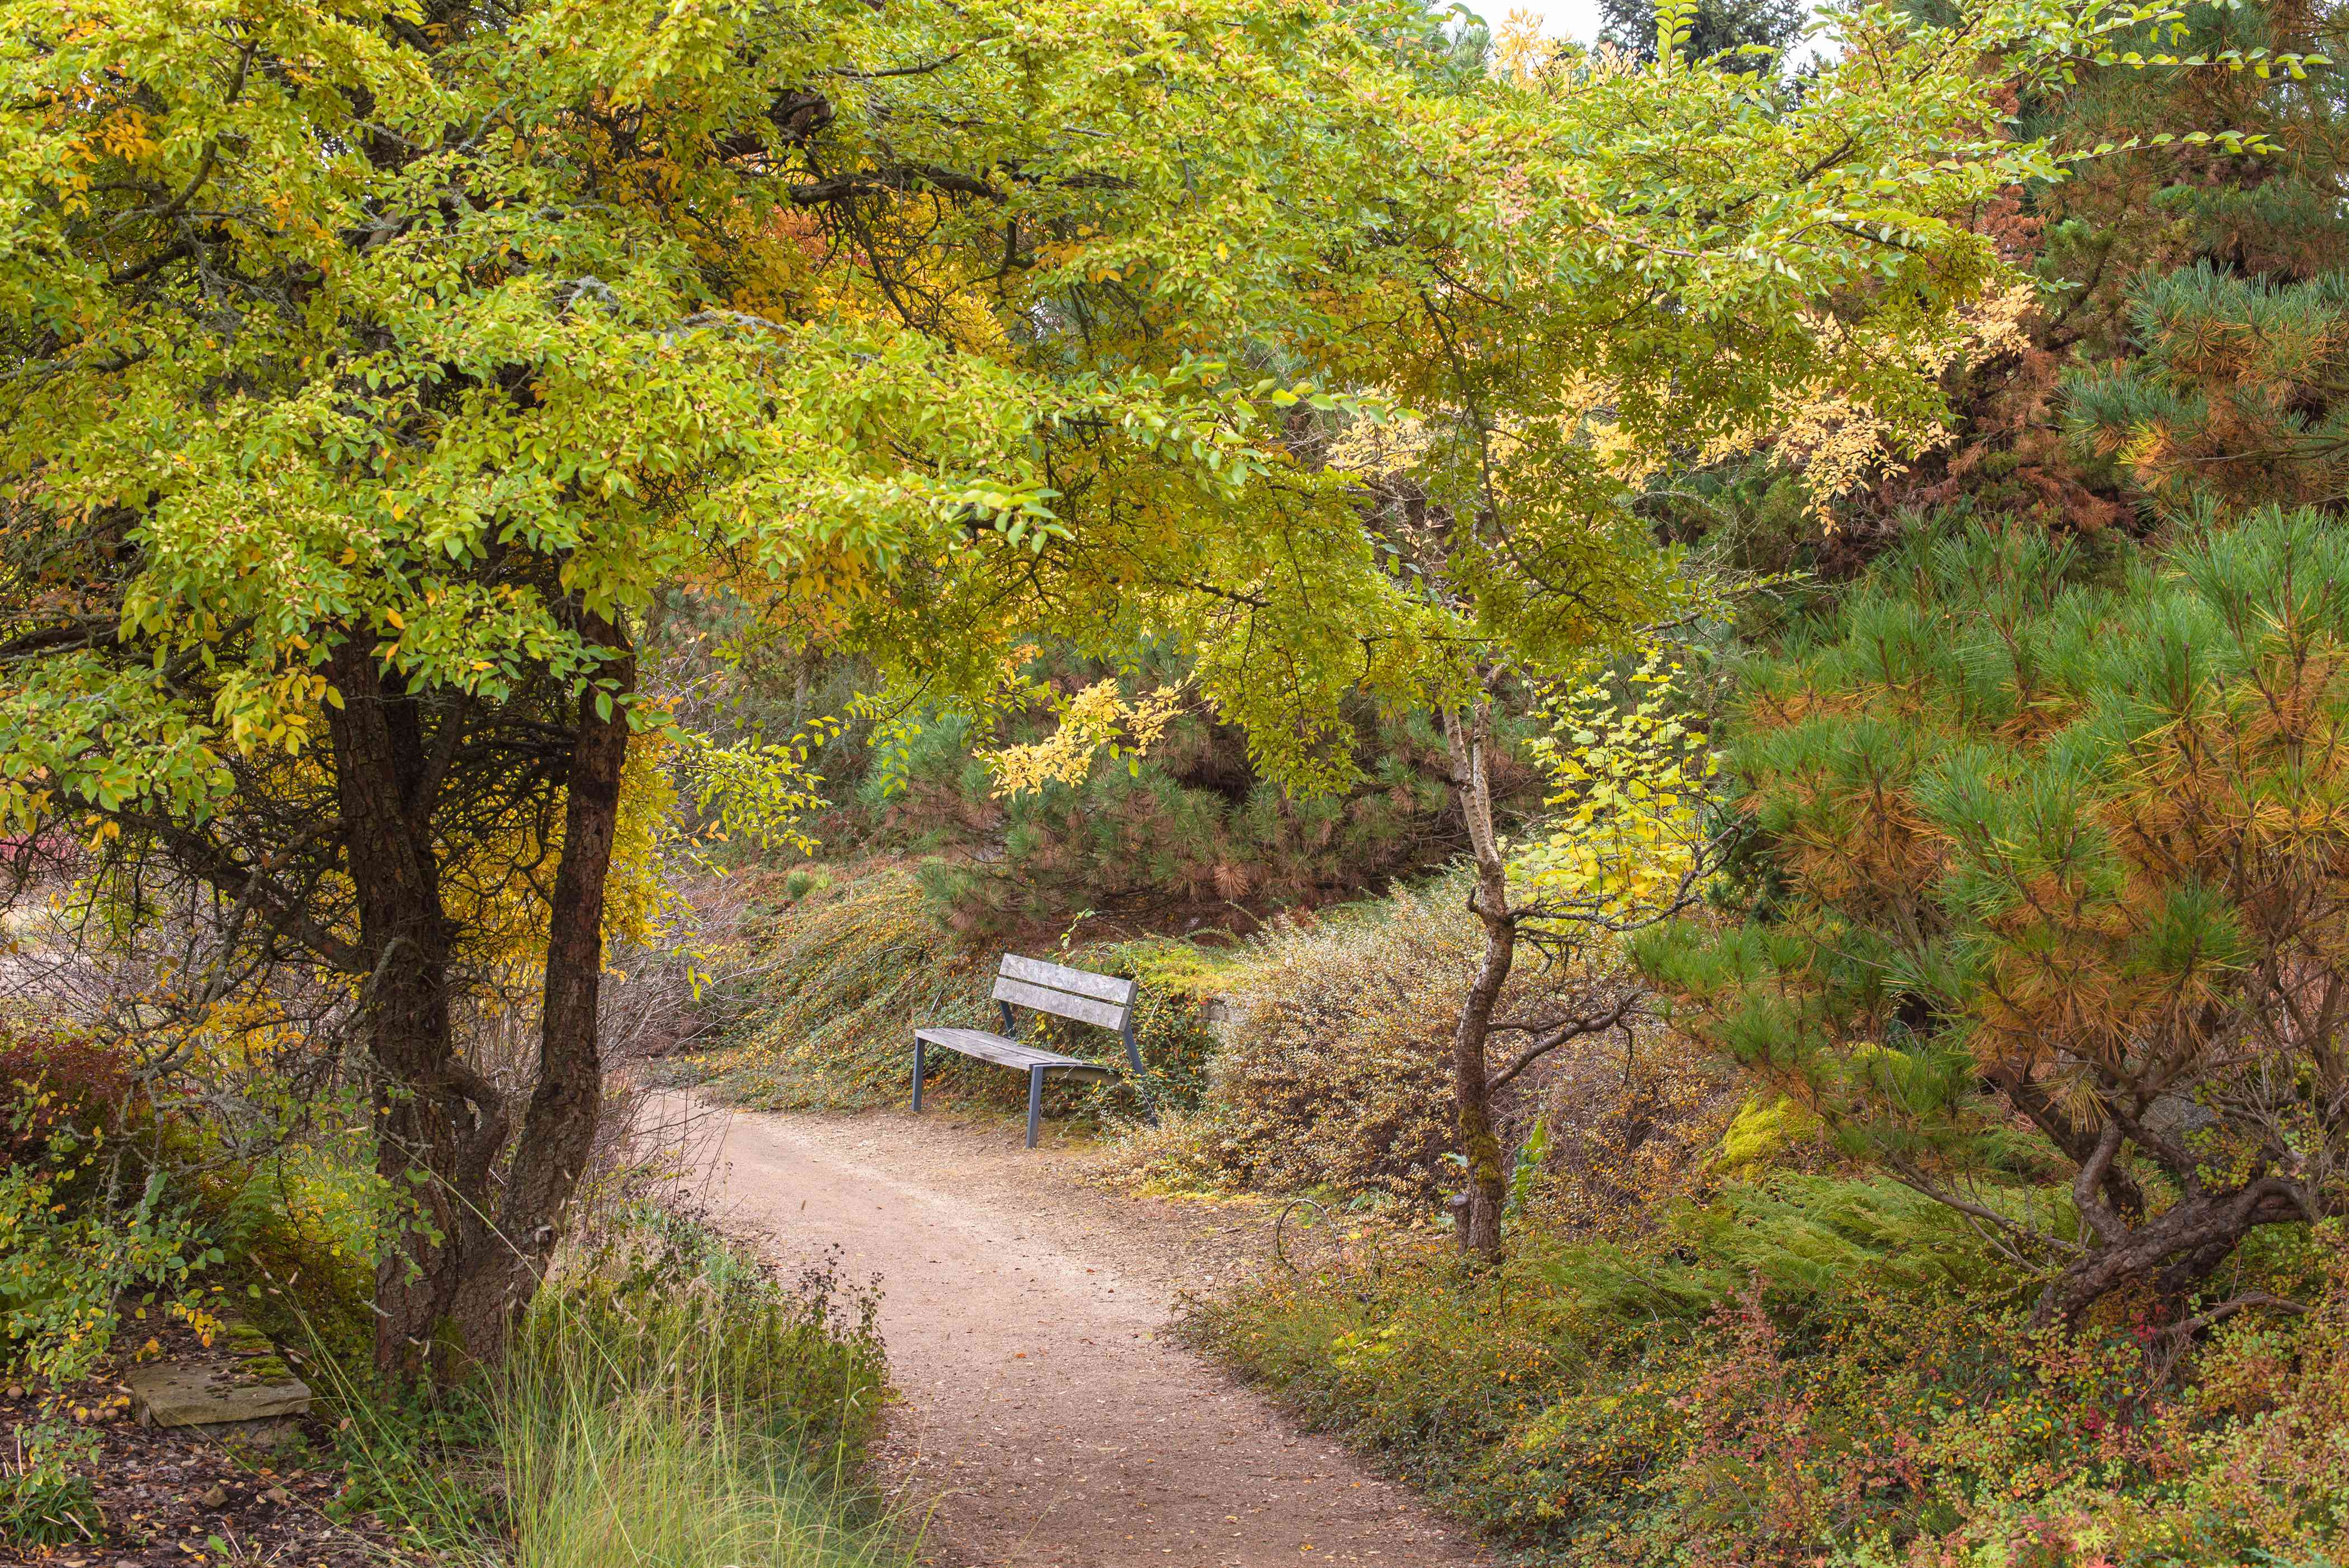 Lacebark elm tree with bright green and yellow leaves next to pathway and bench